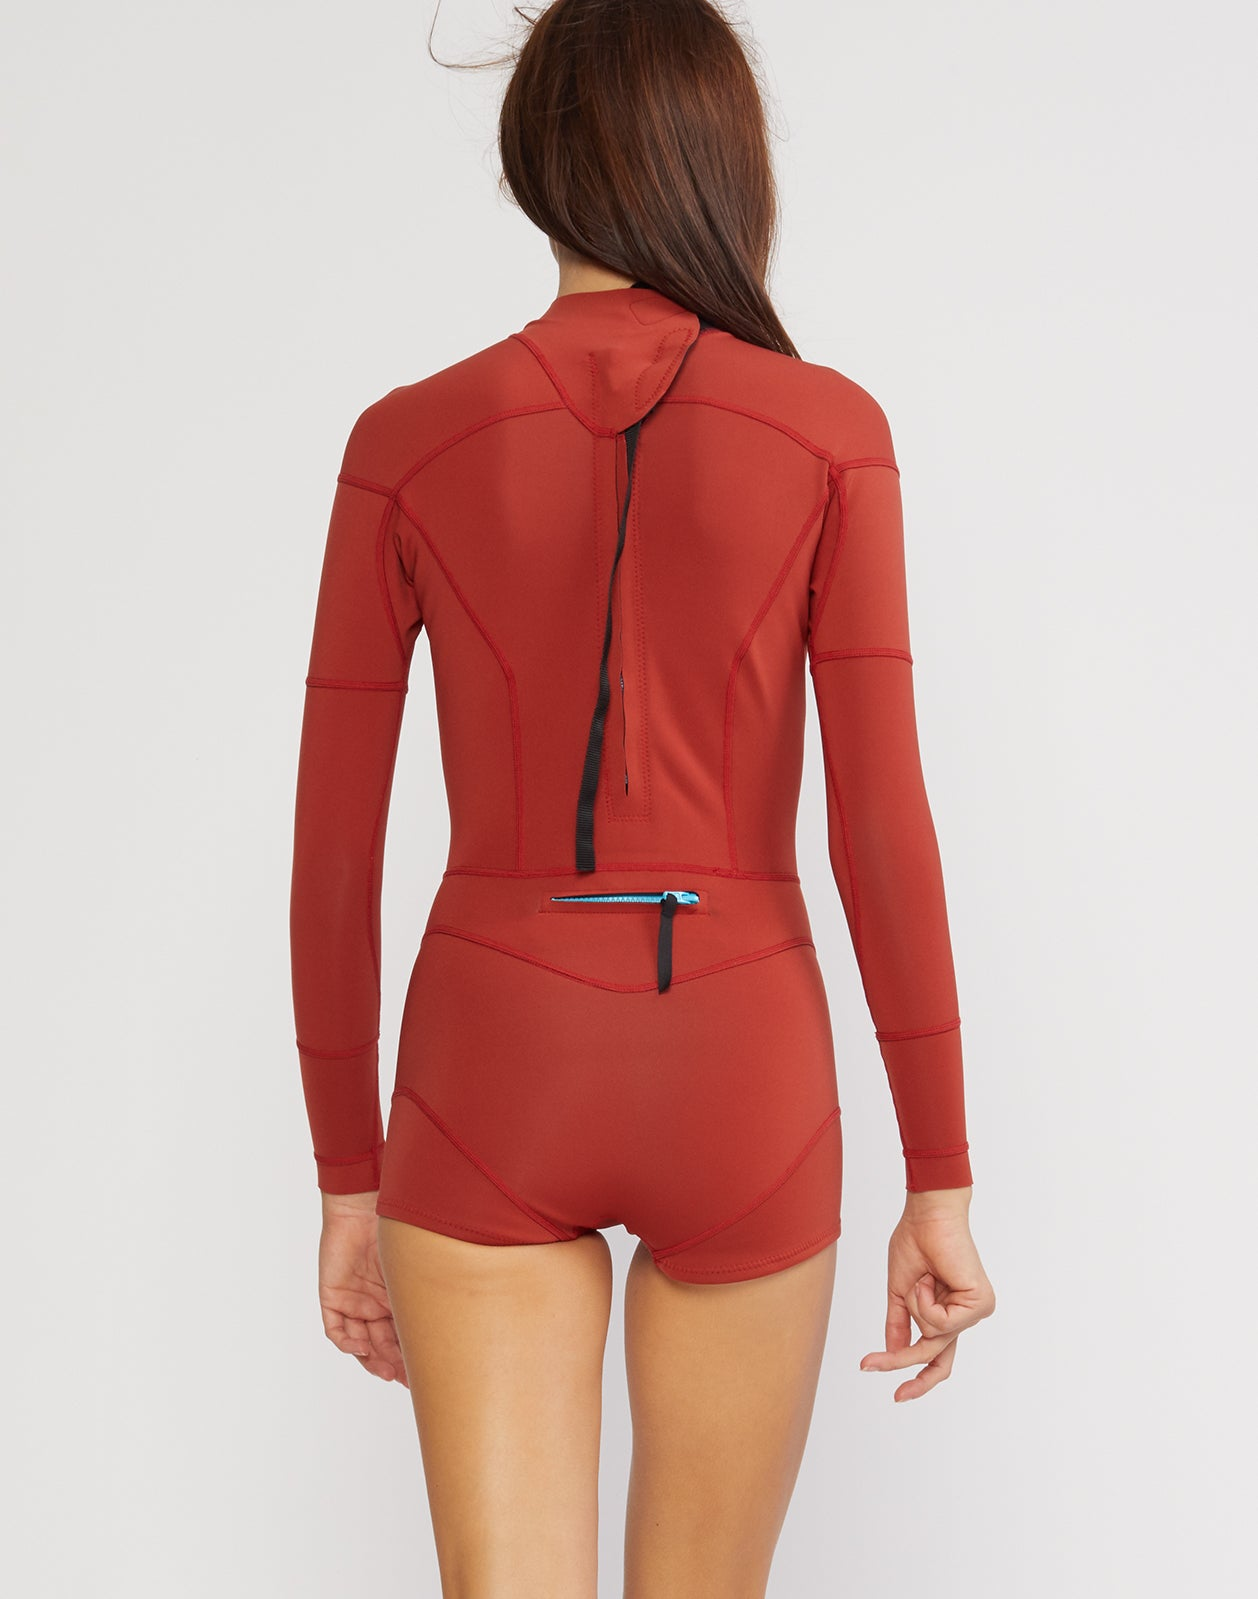 Back view of the solid neoprene wetsuit in rusty red.